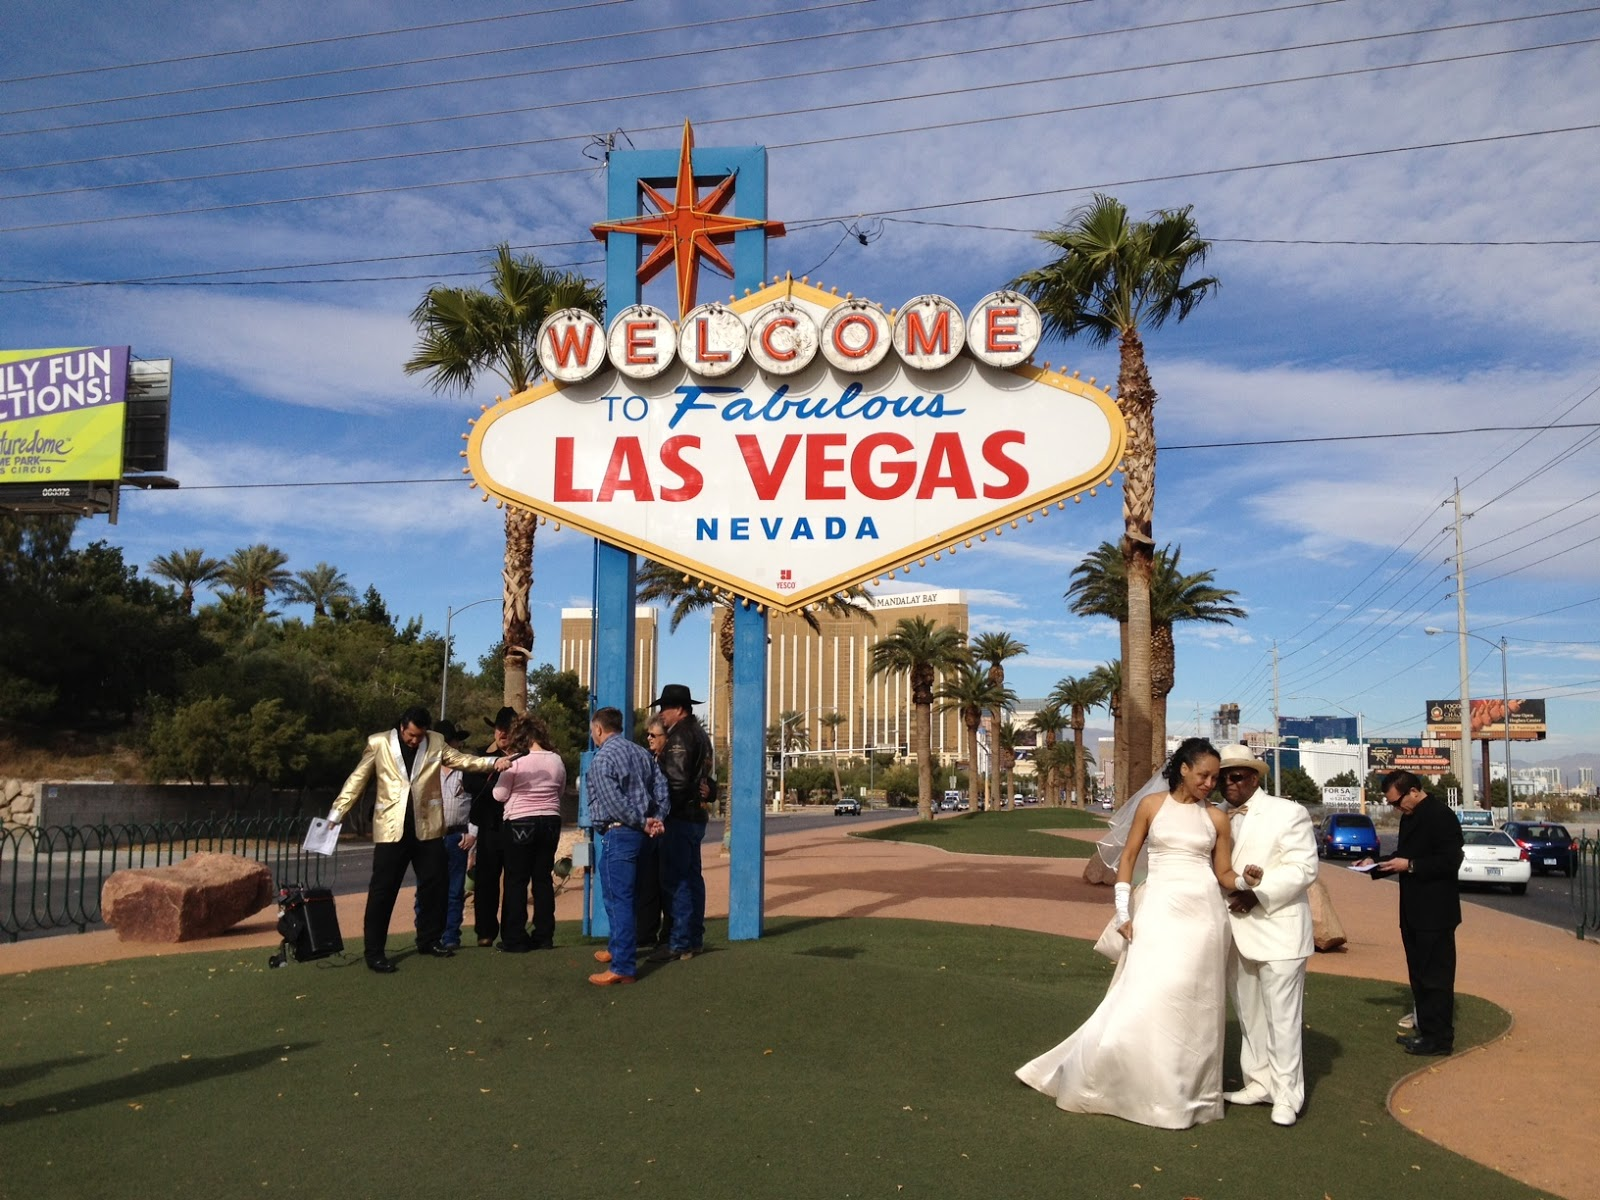 Drive In Hochzeit Las Vegas Fabulous Daily Photo Of Las Vegas Welcome To Fabulous Las